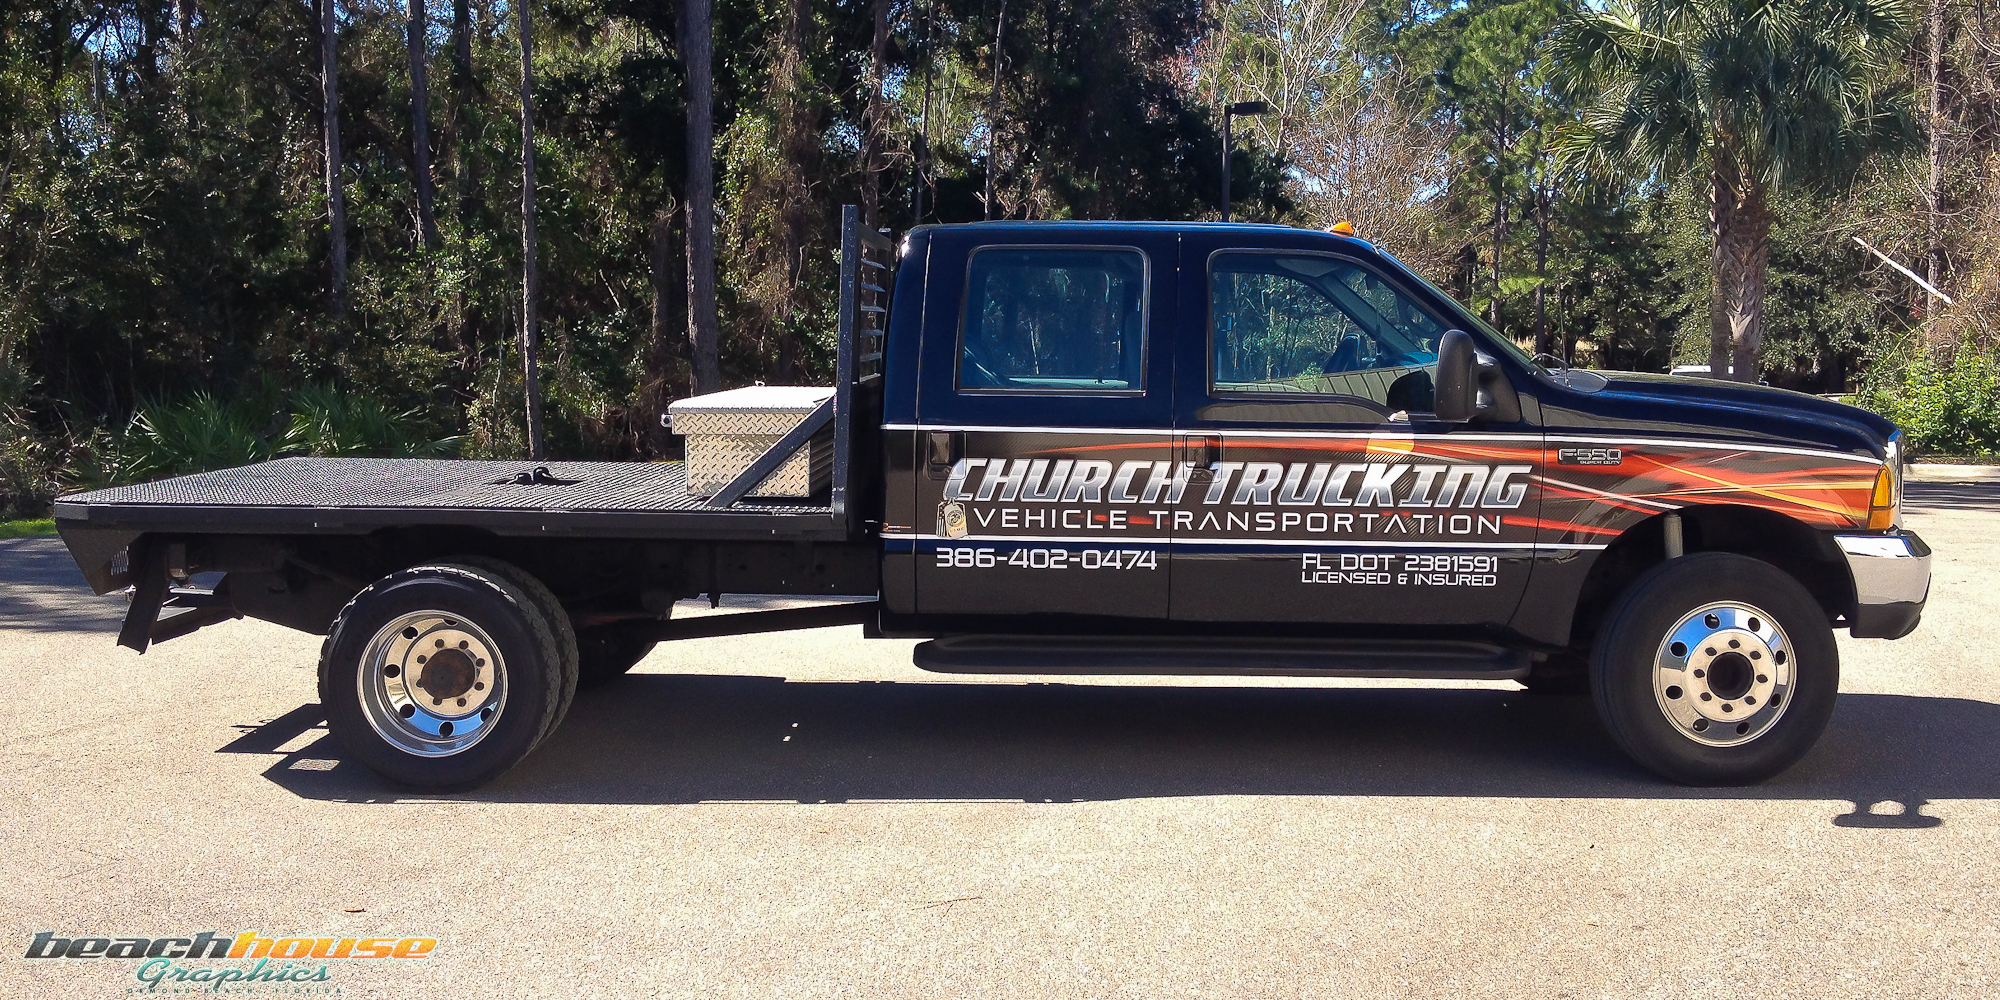 Truck Graphics and Vehicle Wrap